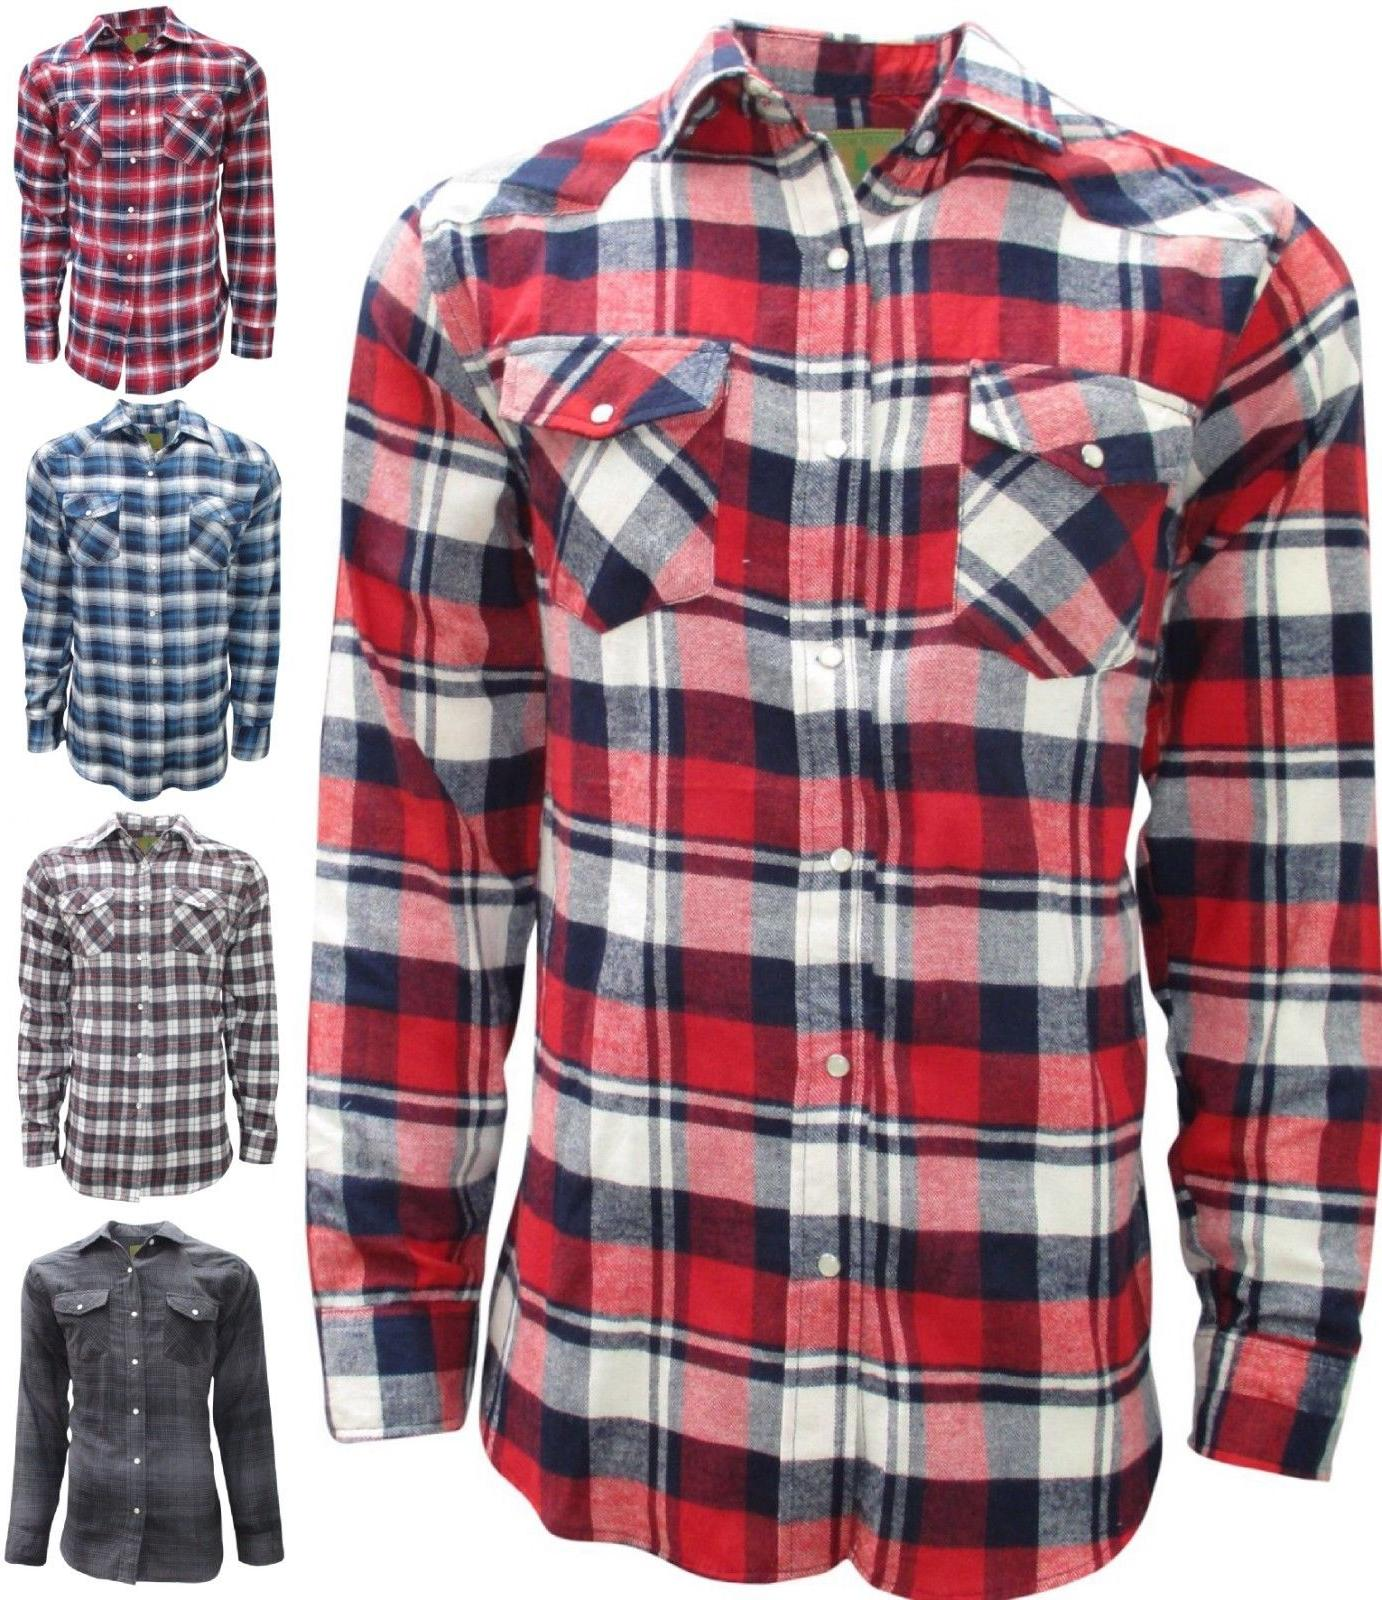 98a76718 Mens Yellow Buffalo Plaid Shirt - DREAMWORKS